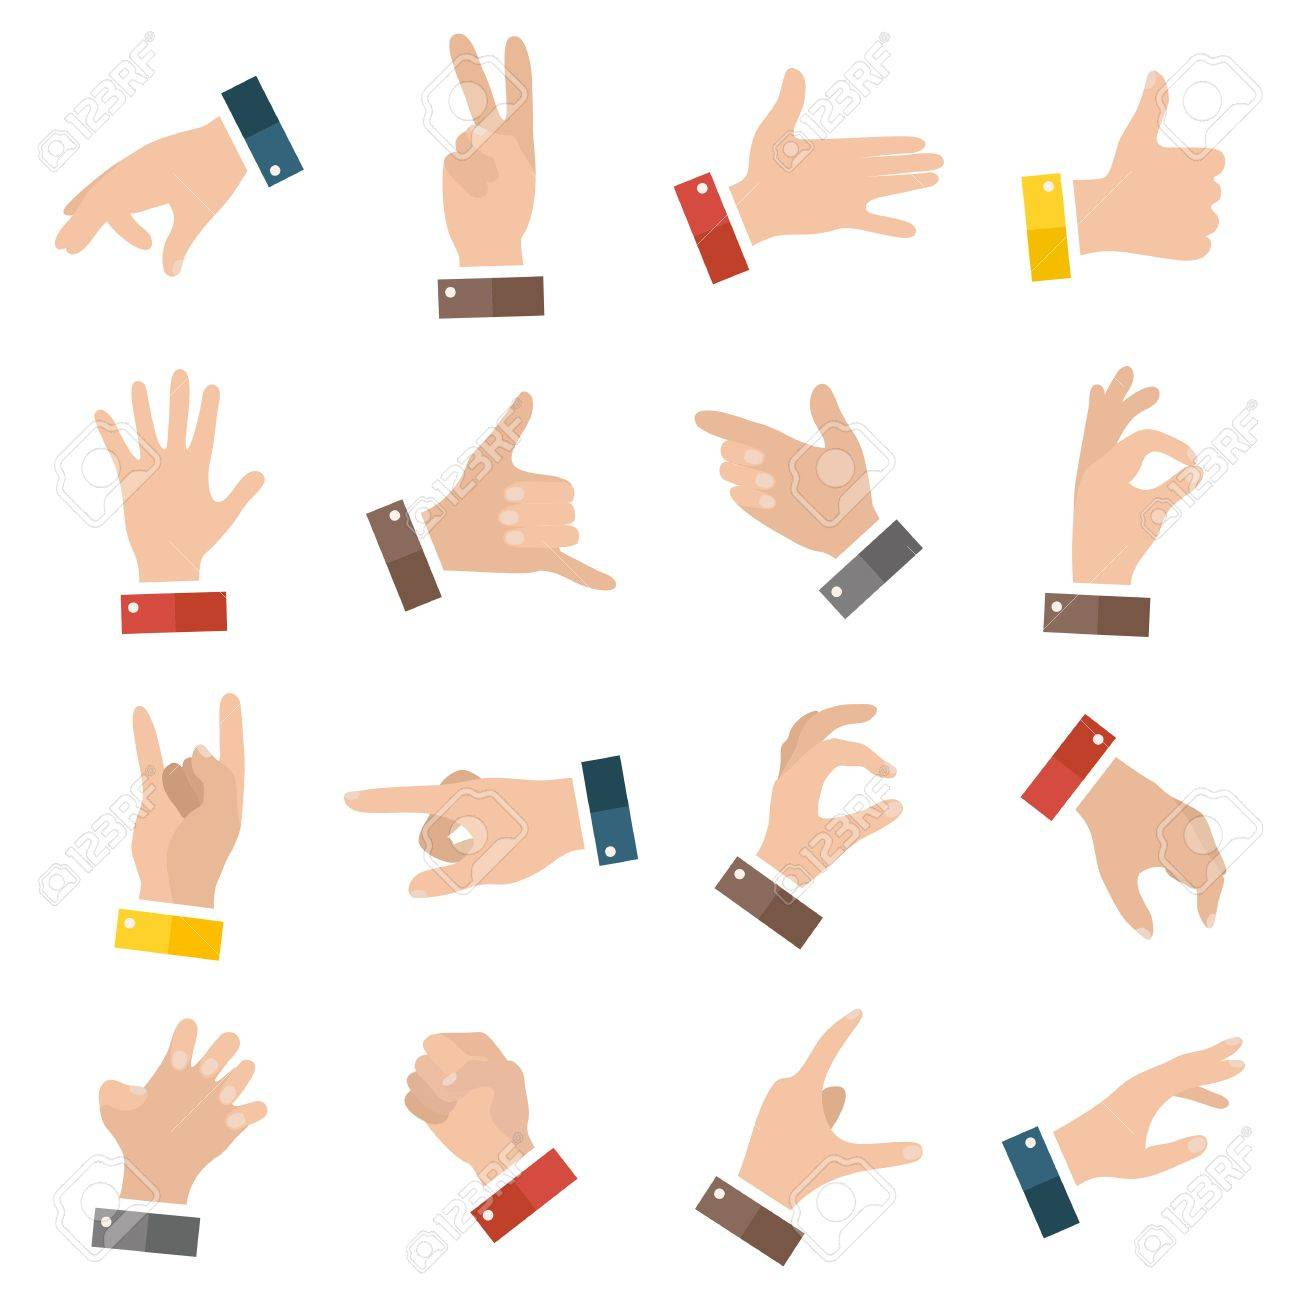 Open empty hands showing different gestures. 16 icons set isolated. Vector hand illustration - 58520860